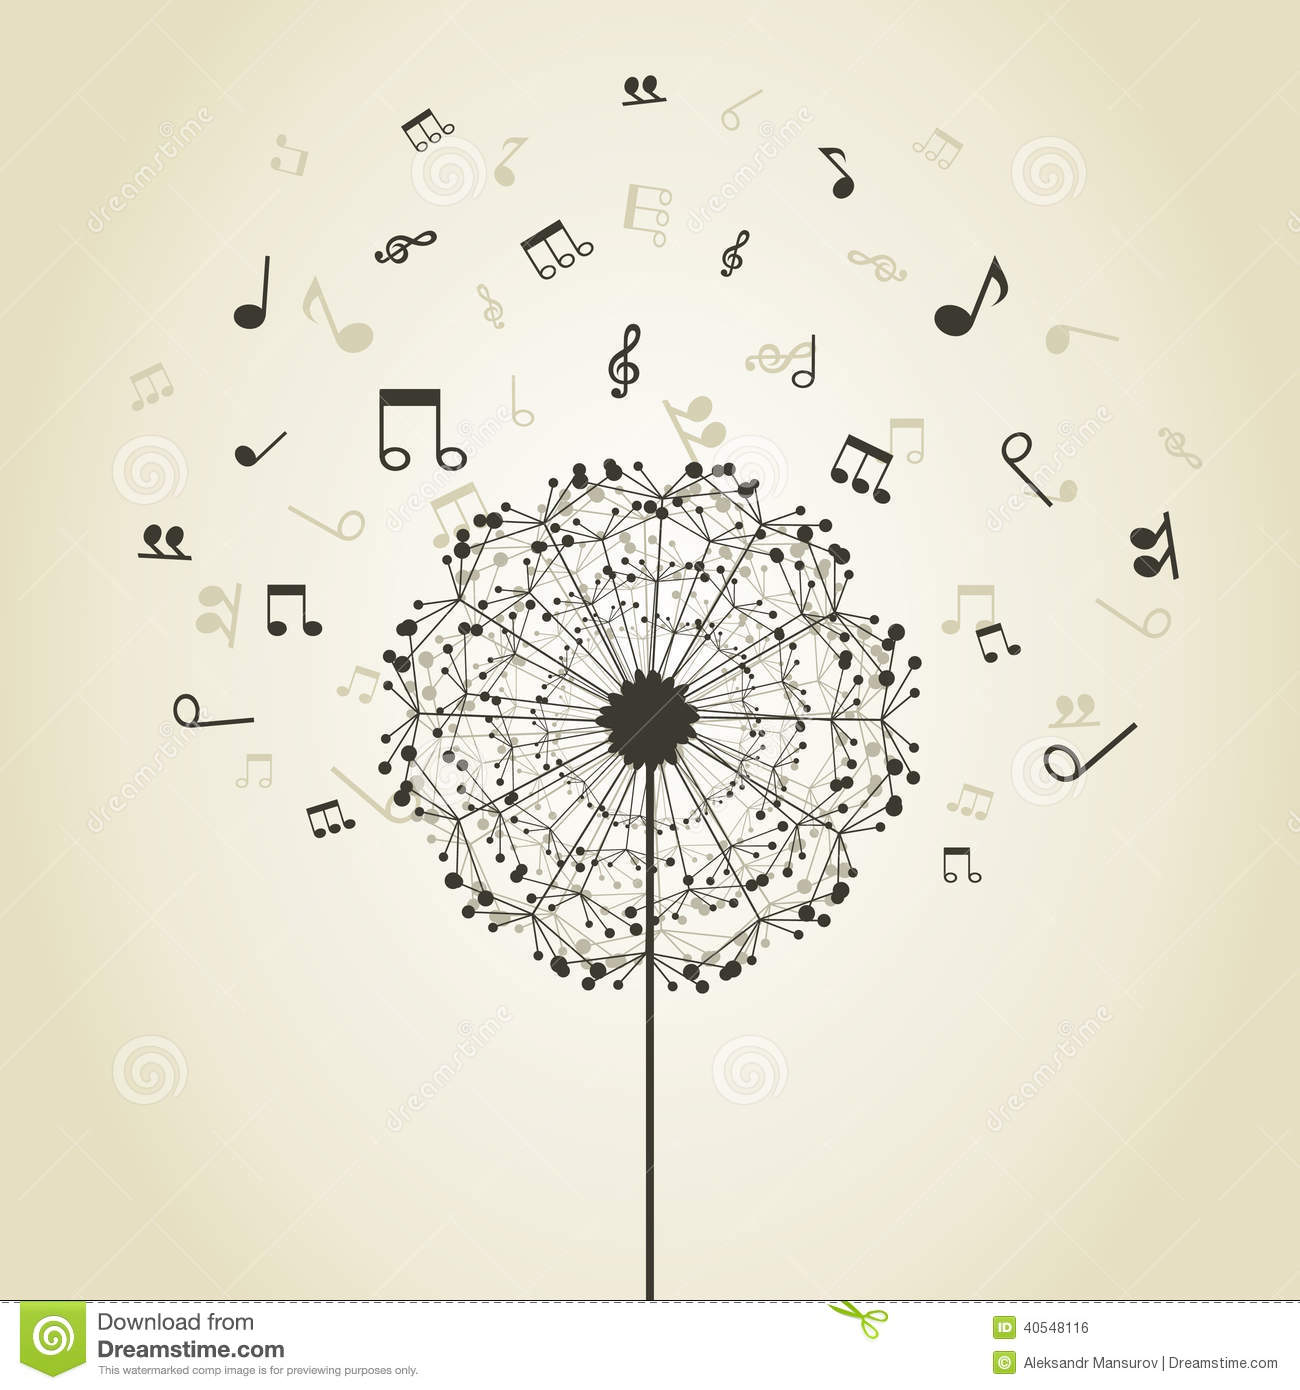 Musical notes around a flower a dandelion.